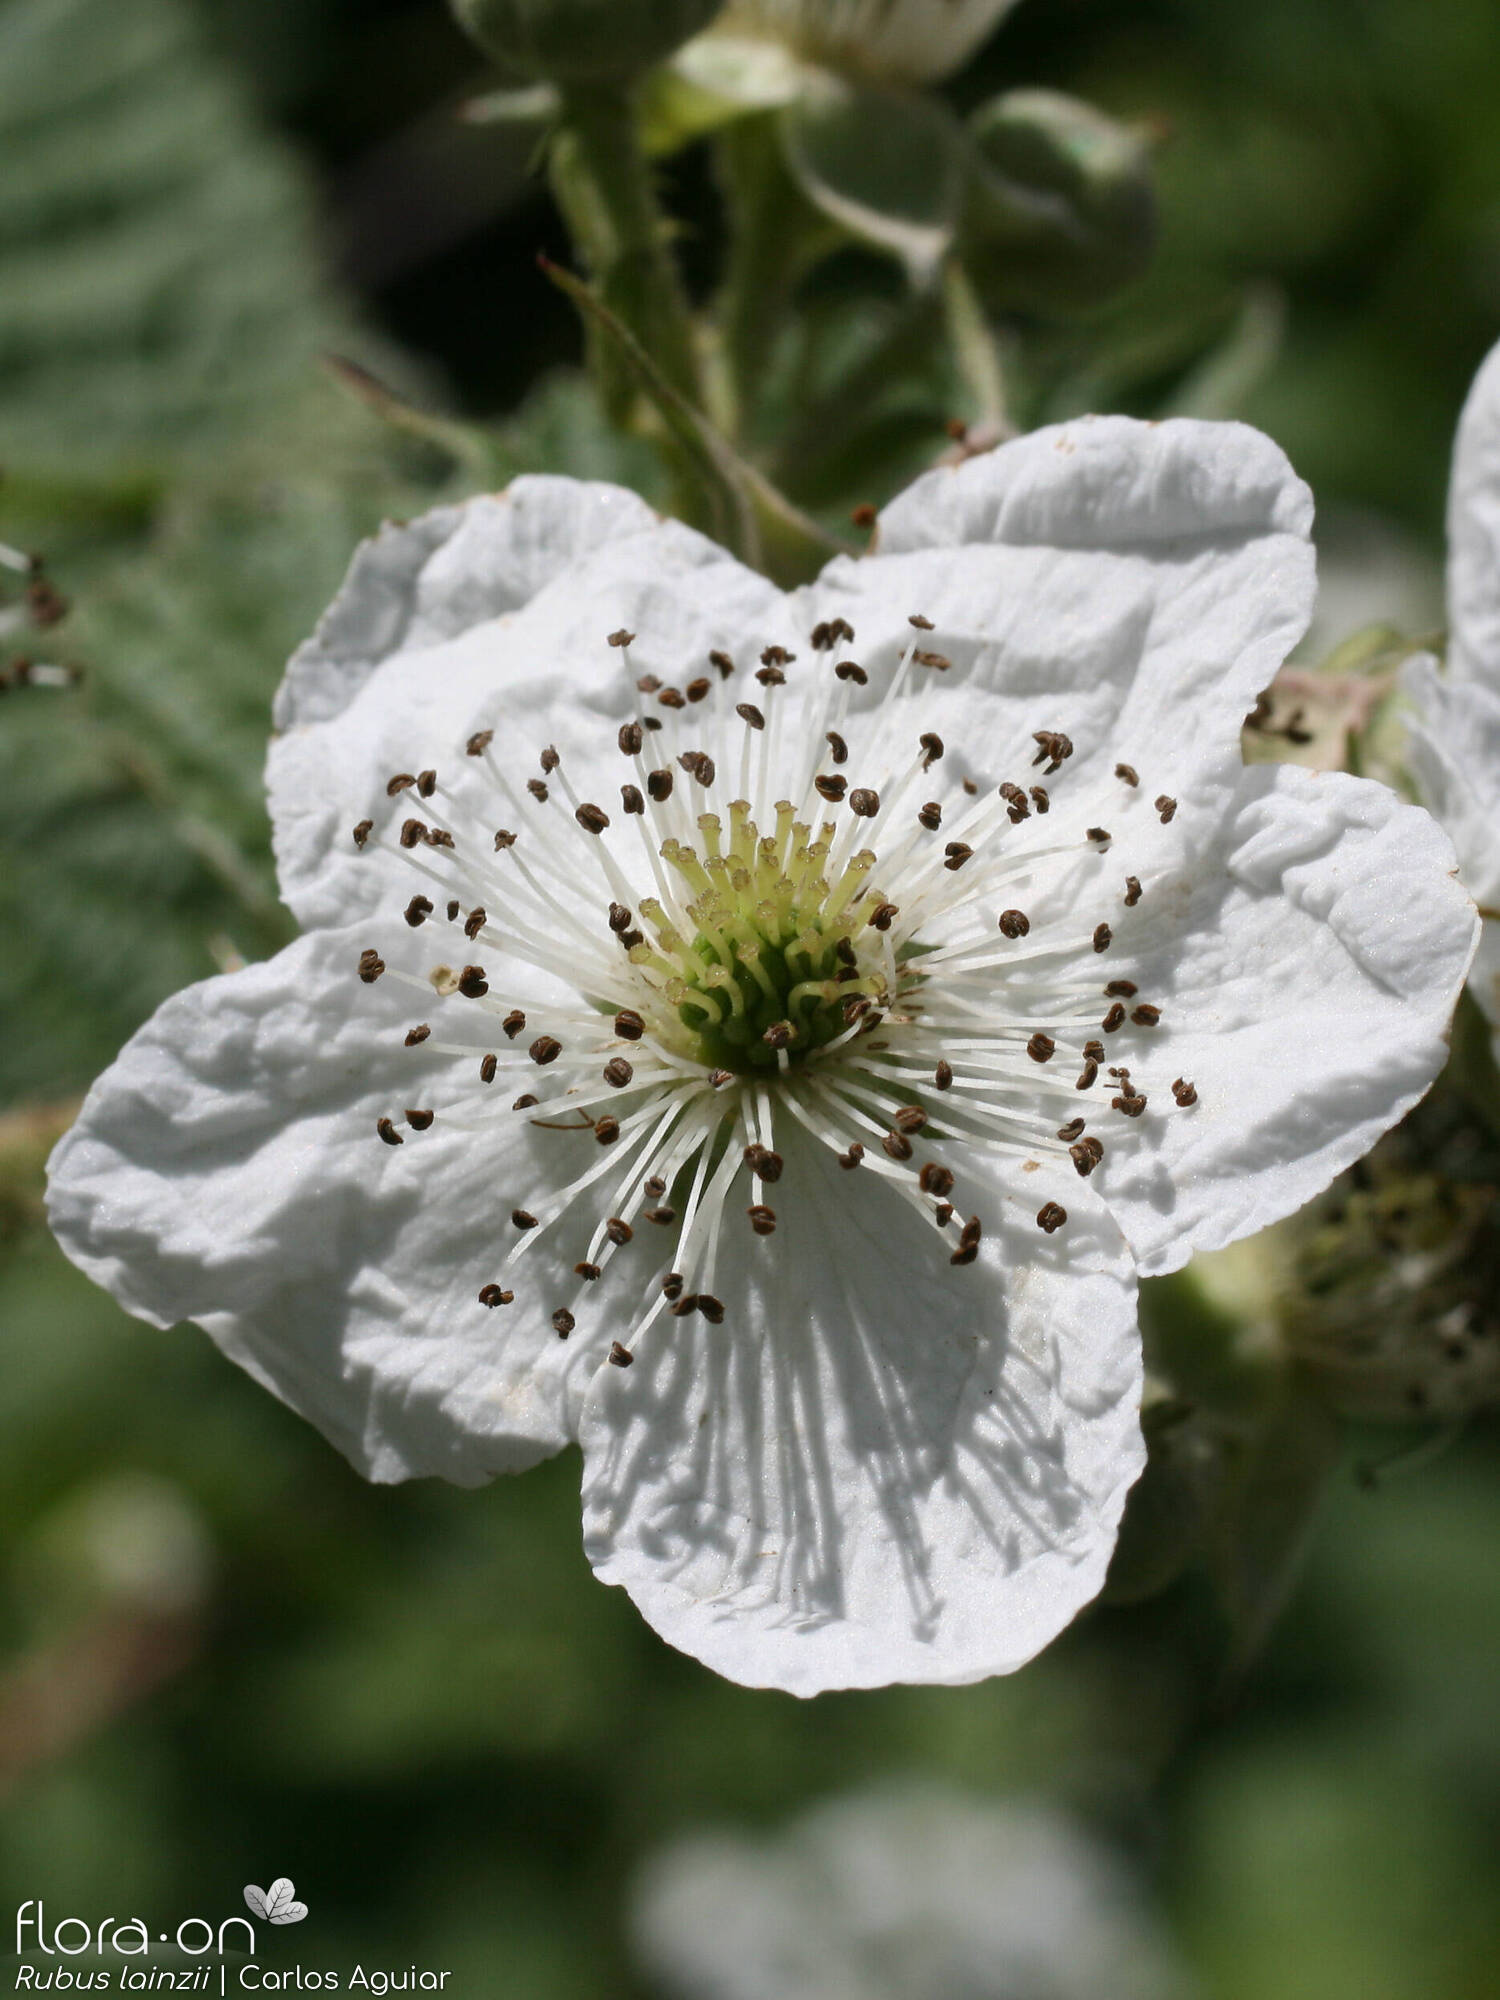 Rubus lainzii - Flor (close-up) | Carlos Aguiar; CC BY-NC 4.0